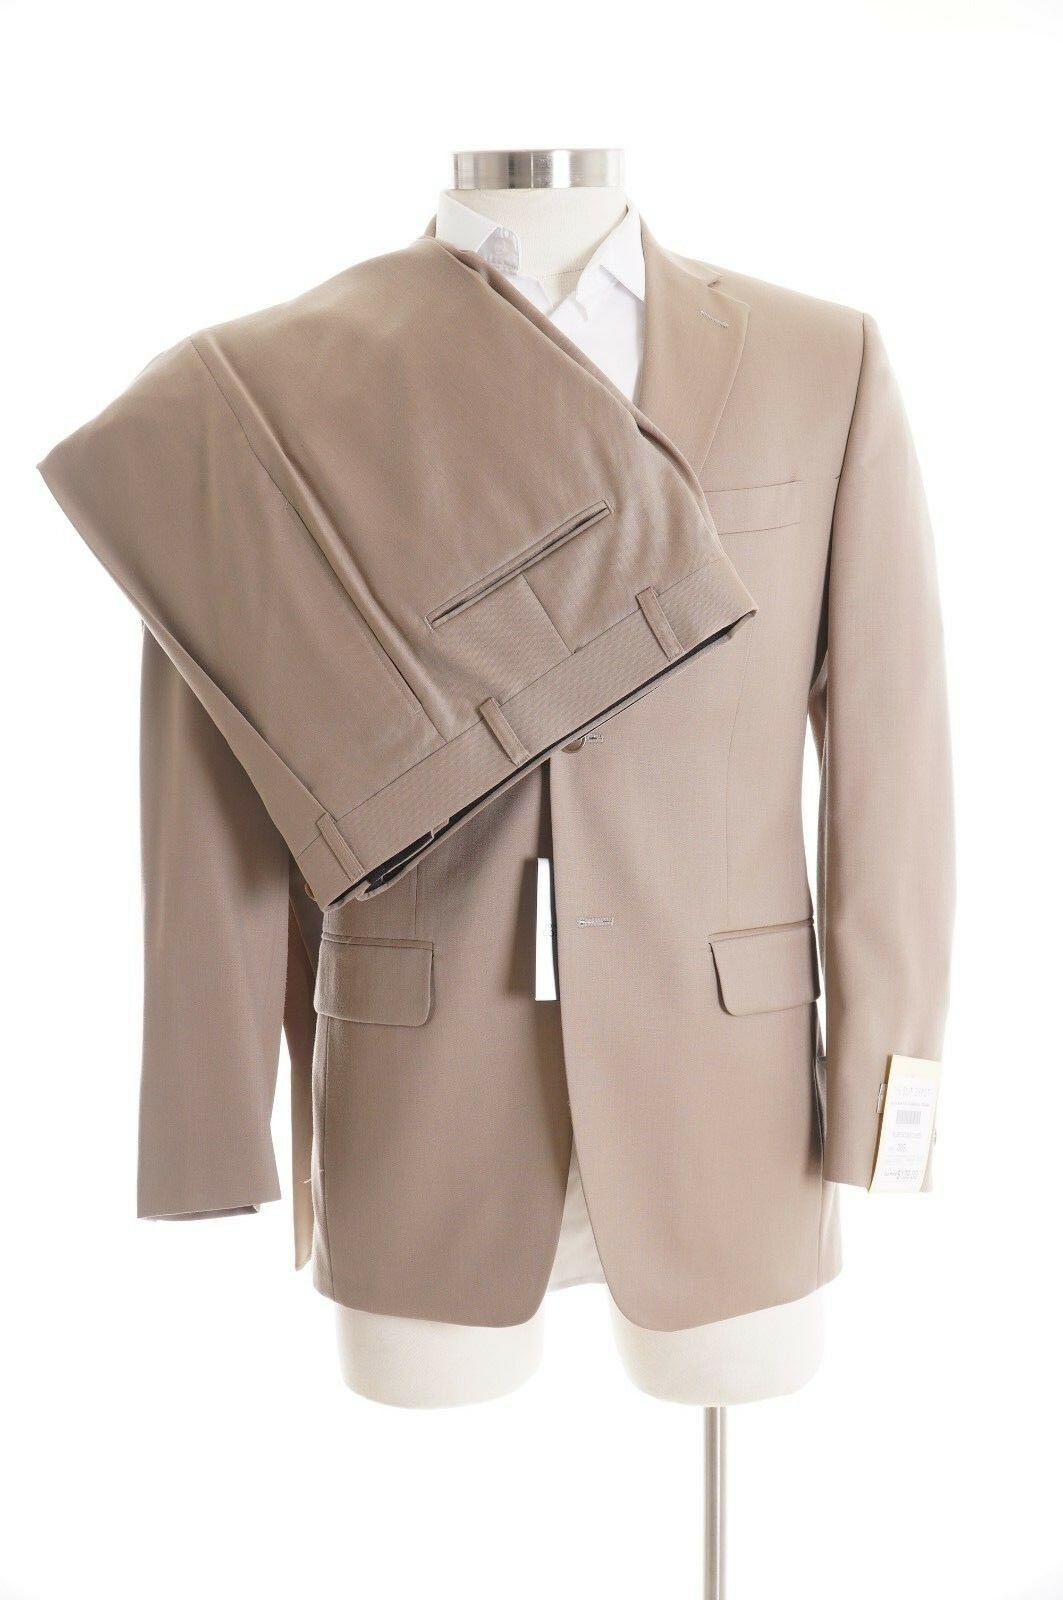 Jones New York Classic Fit Solid Tan 100% Wool Two Button Suit 36S 29.5W